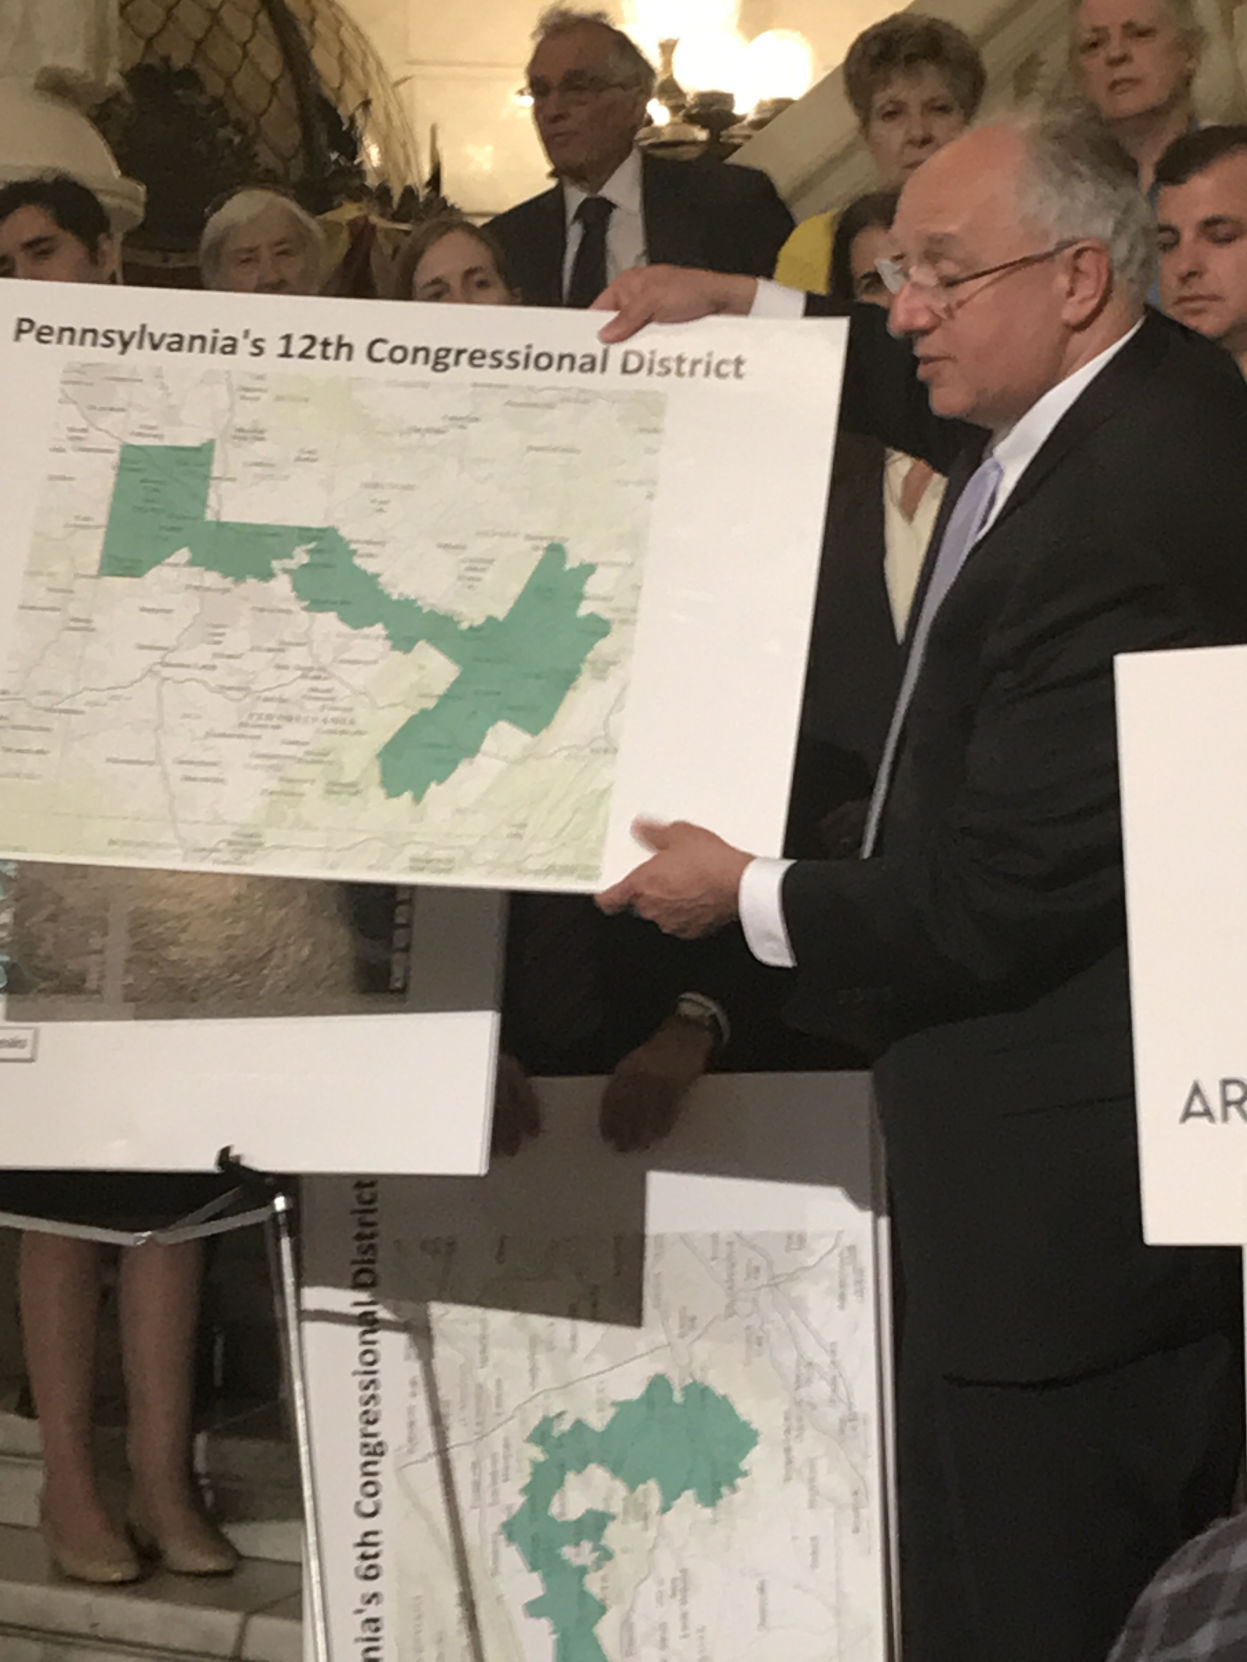 Gersch's law firm, along with the Public Interest Law Center, filed a lawsuit Thursday alleging the state's Congressional districts are illegally weighted to the advantage of the Republican Party. Photo by John Finnerty/CNHI State Reporter